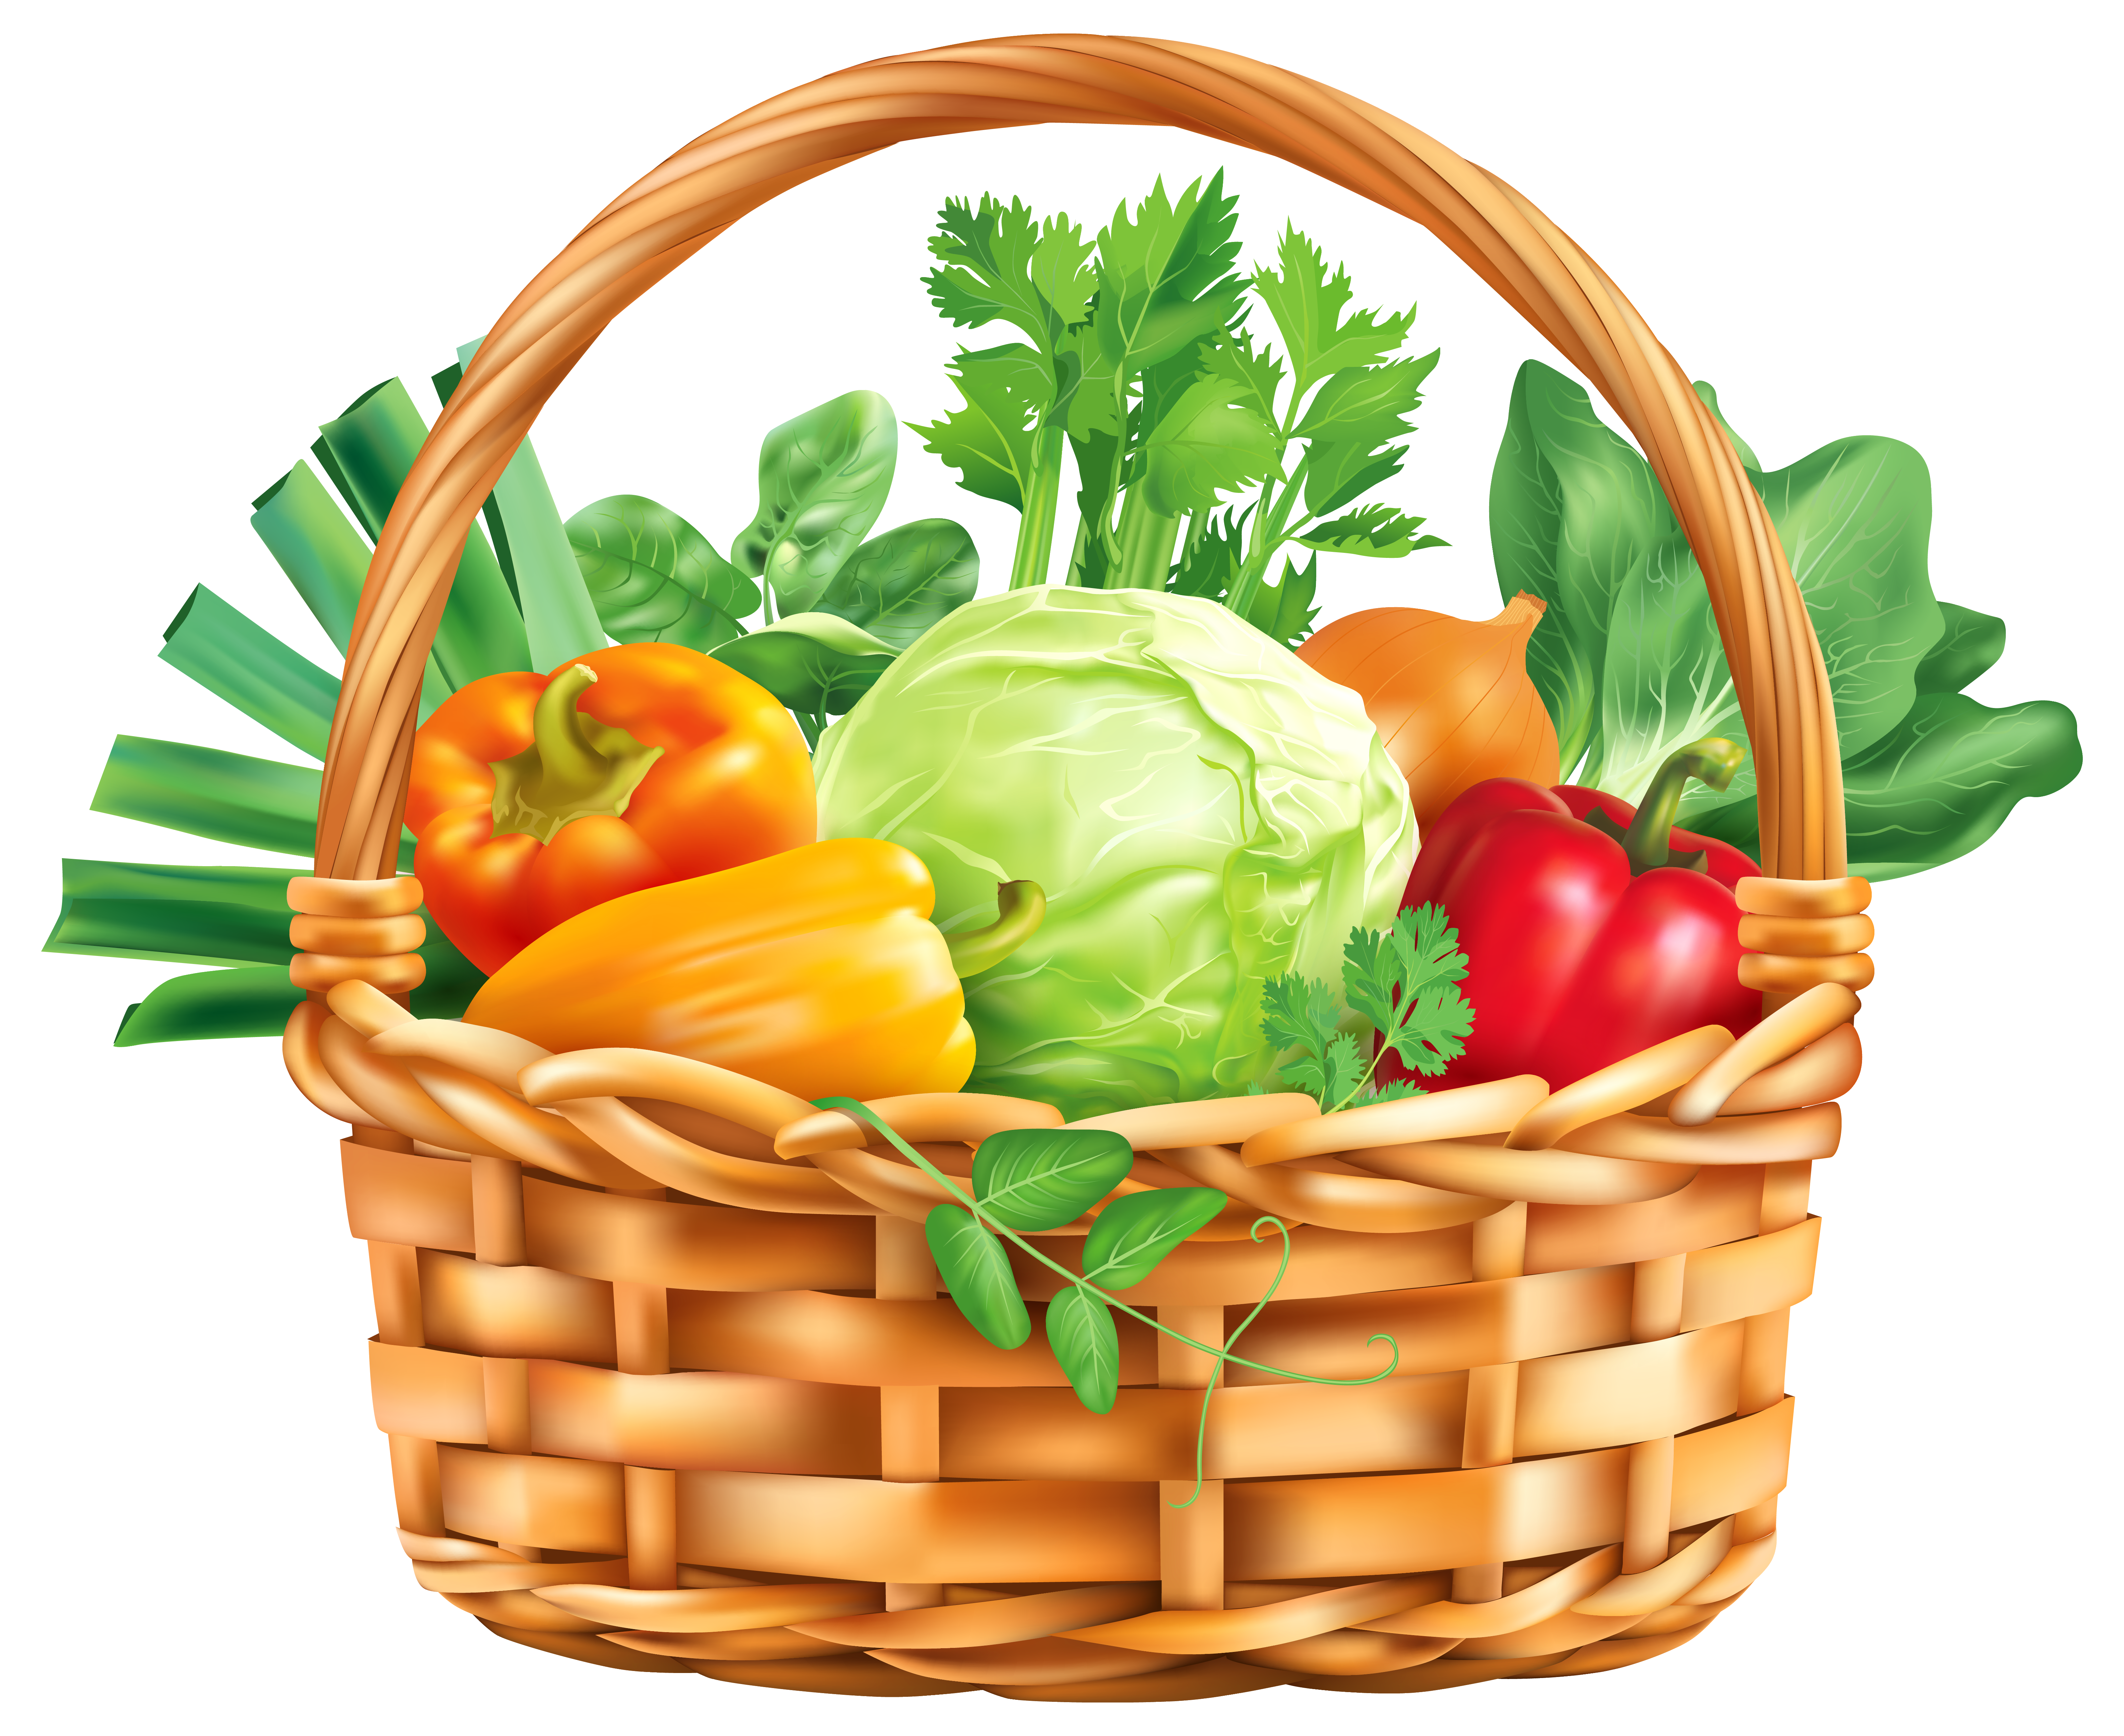 Vegetable clipart. Free basket cliparts download